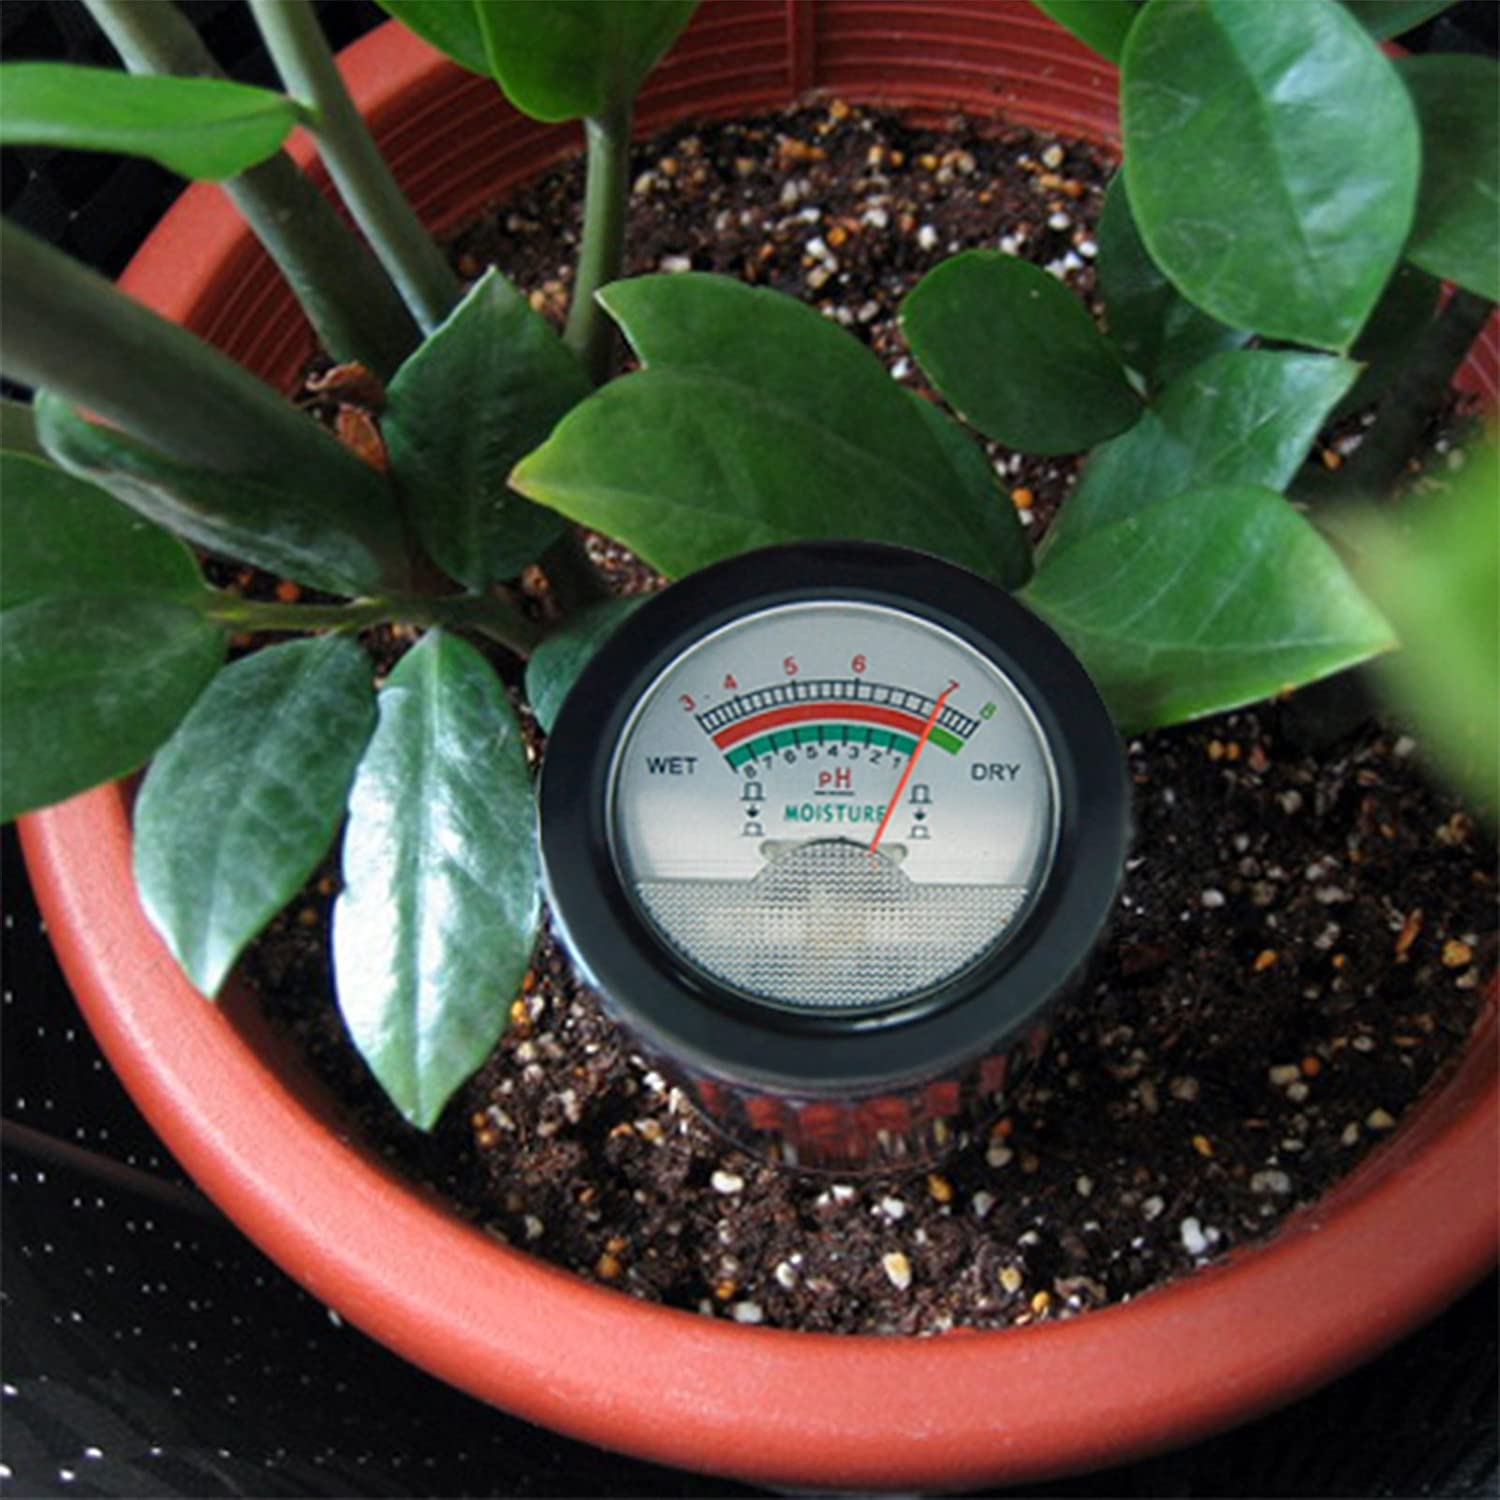 Test The Soil And Moisture In The Plant